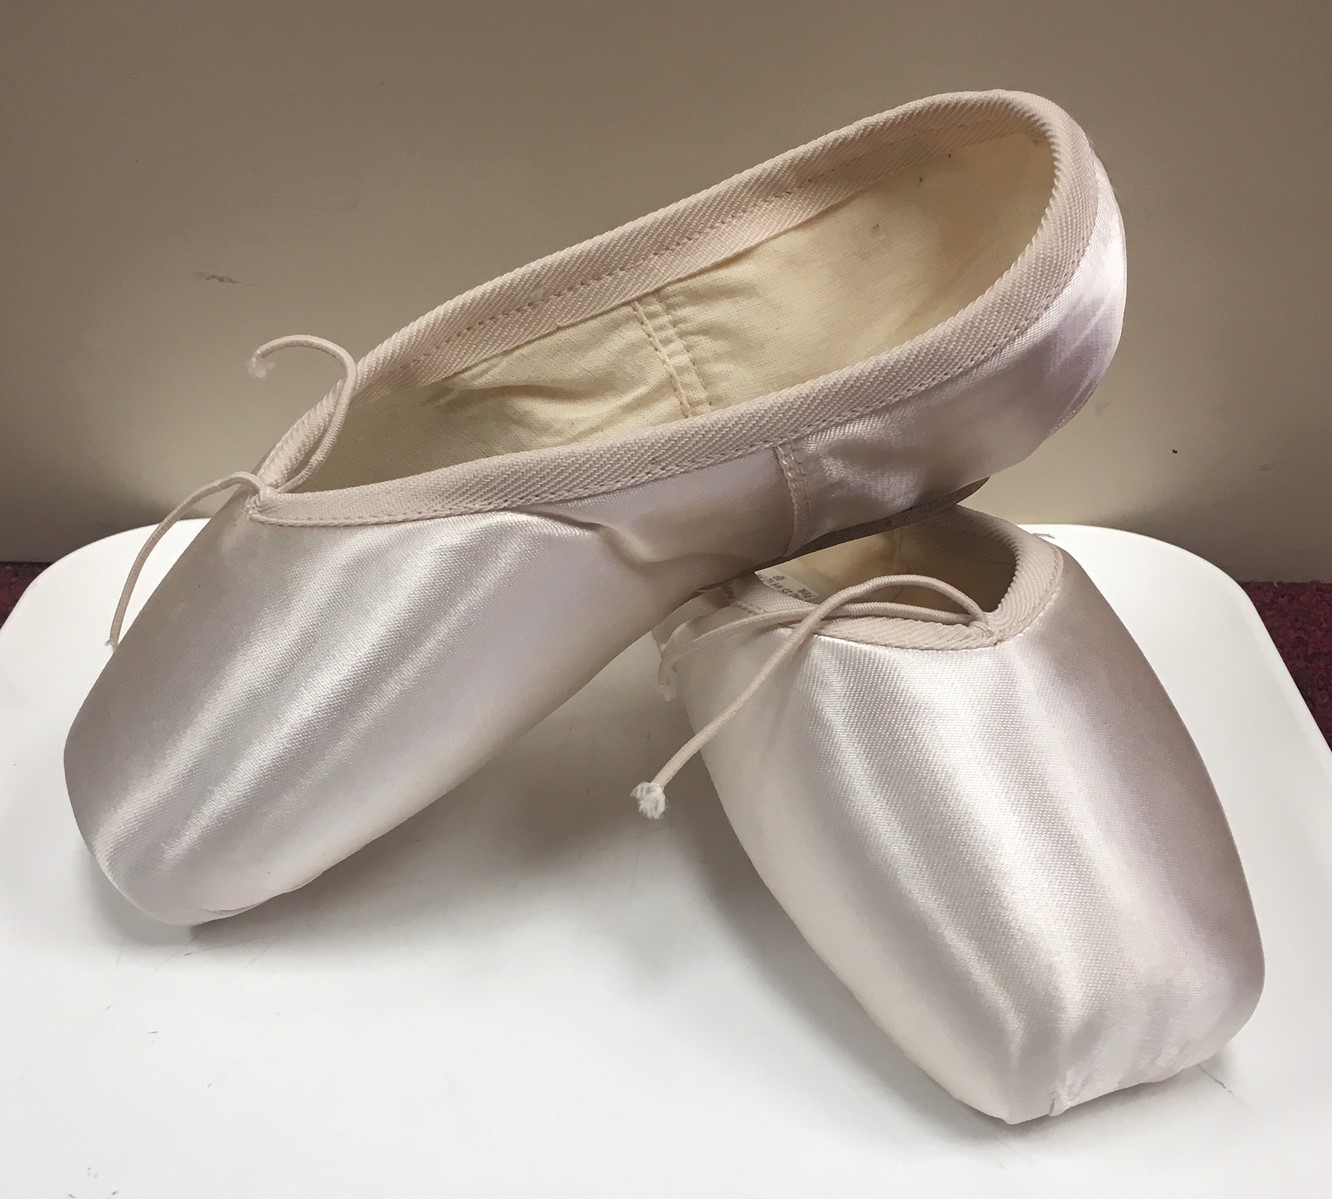 "Russian Pointe ""Muse"" U Vamp Flexible Medium Shank Shoe"